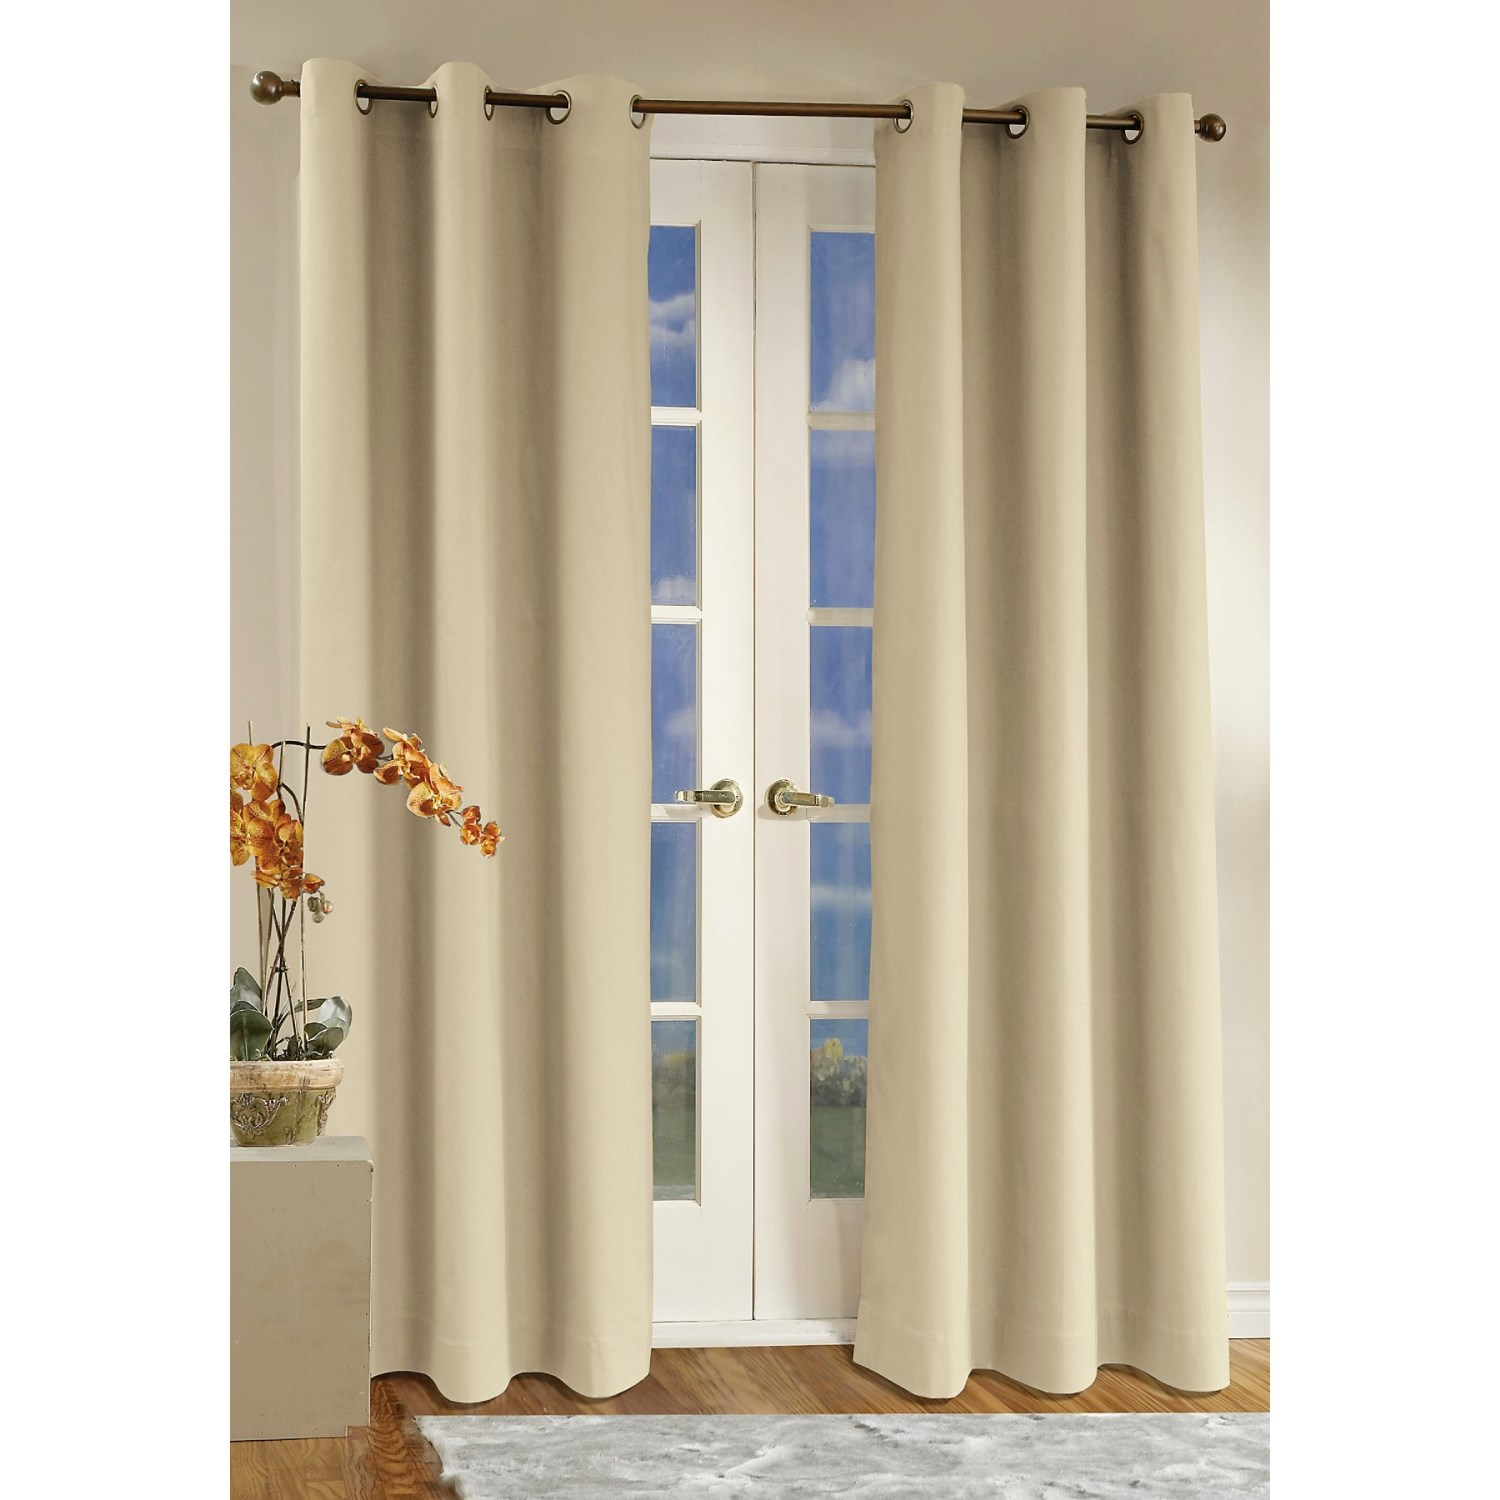 Thermalogic Weathermate Curtains 80x54 Grommet Top Insulated 2750x Save 69